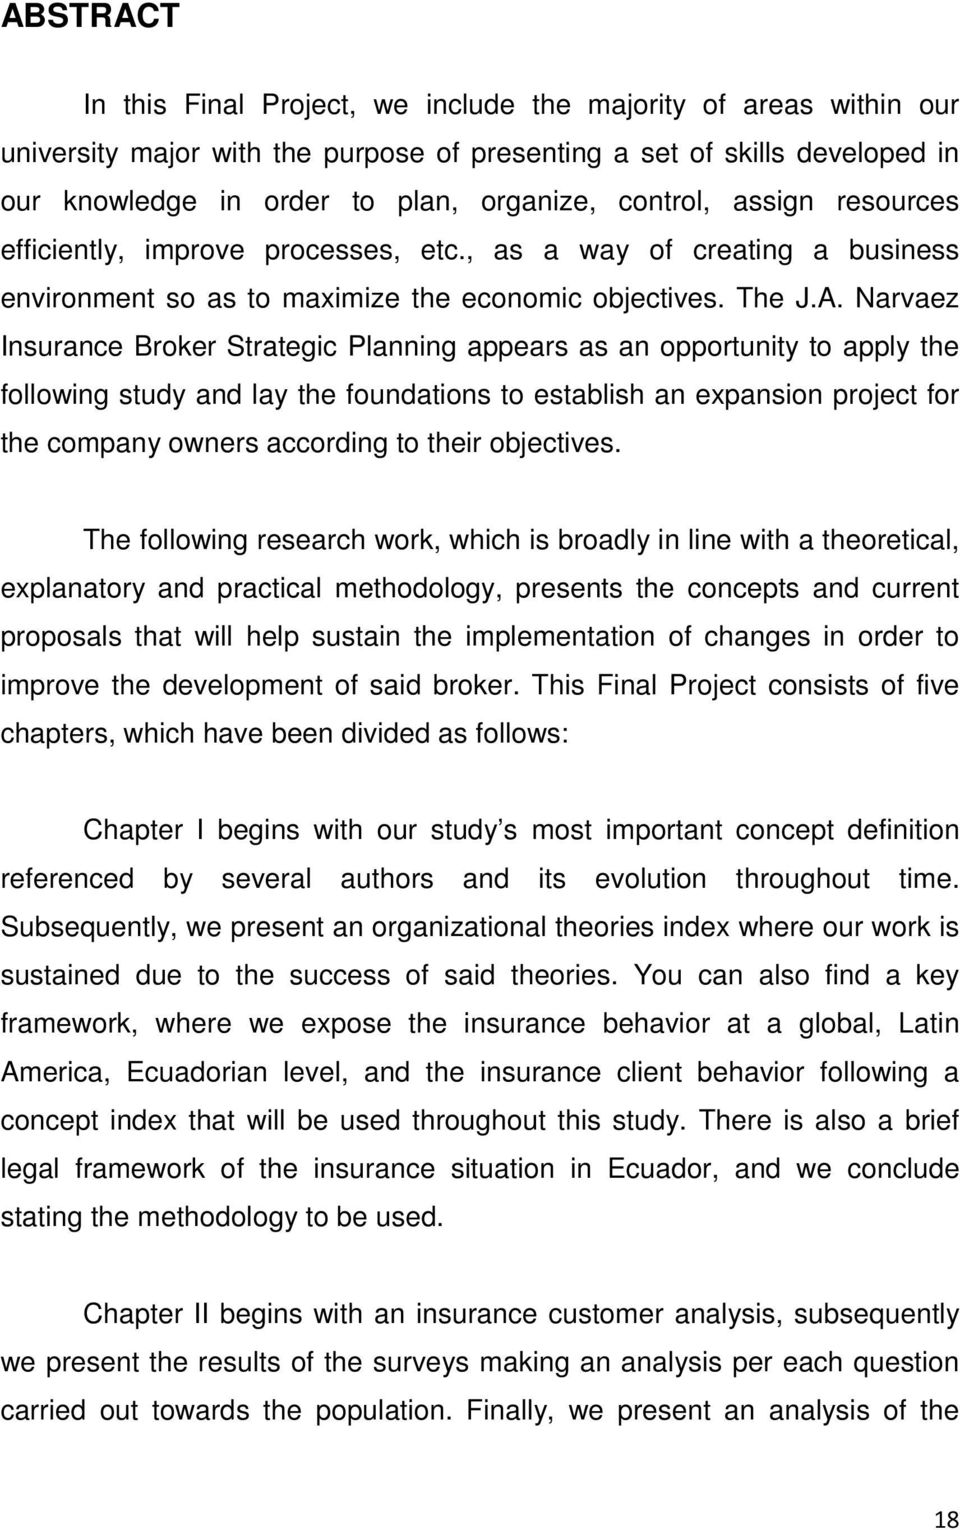 Narvaez Insurance Broker Strategic Planning appears as an opportunity to apply the following study and lay the foundations to establish an expansion project for the company owners according to their